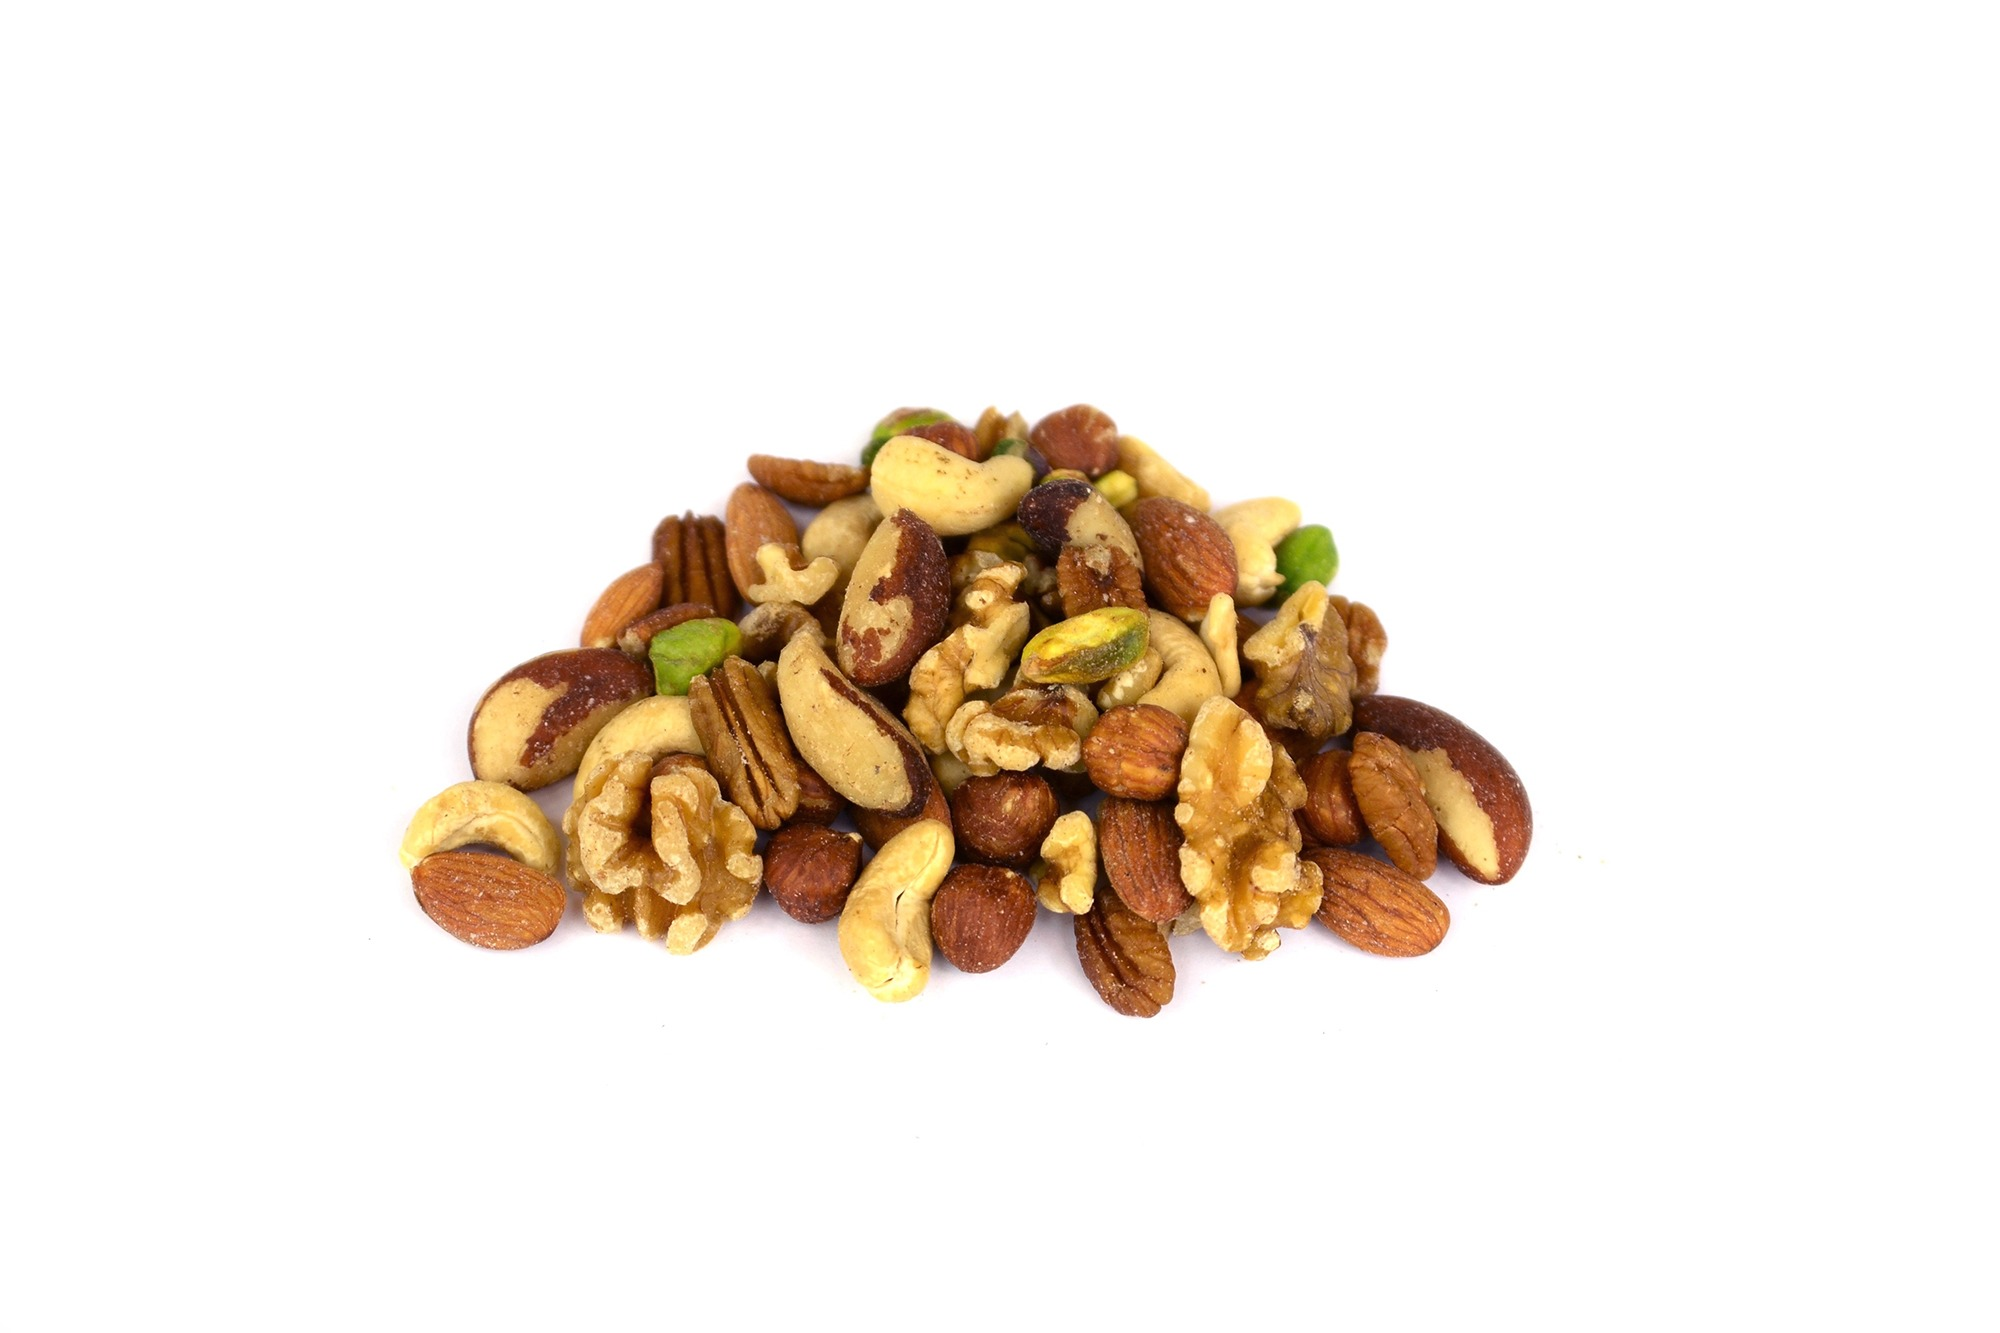 Freshest Crop Nuts & Dried Fruits